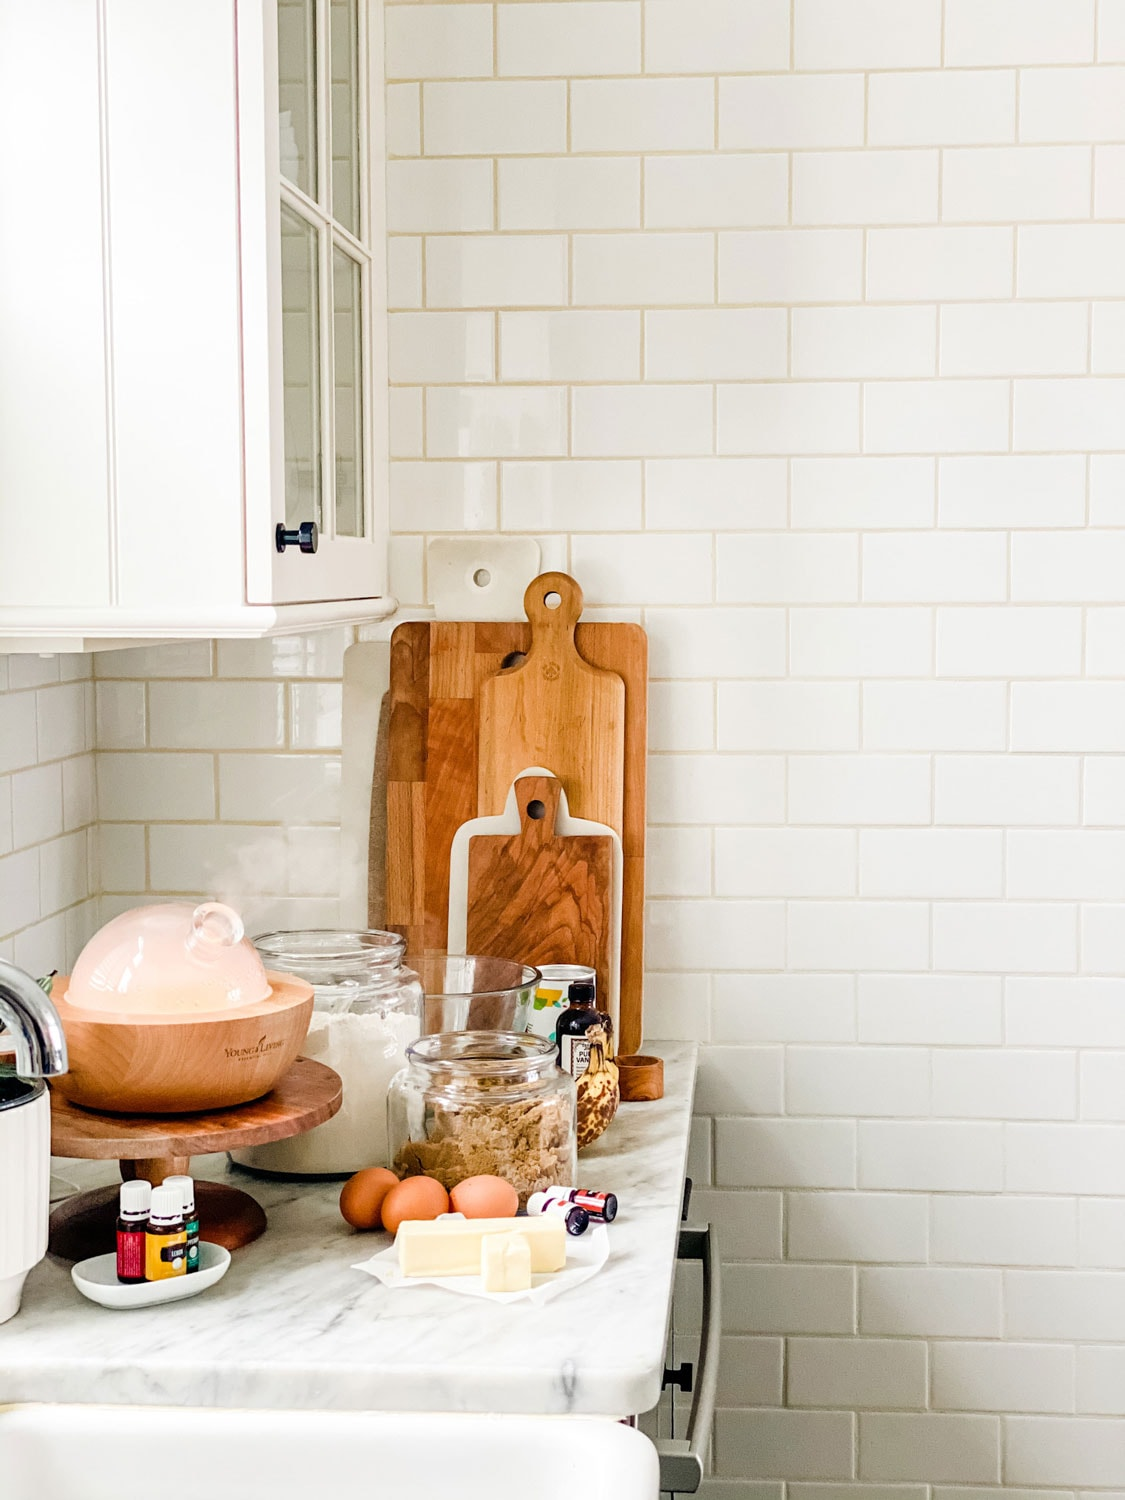 white kitchen with subway tile and baking supplies on the counter